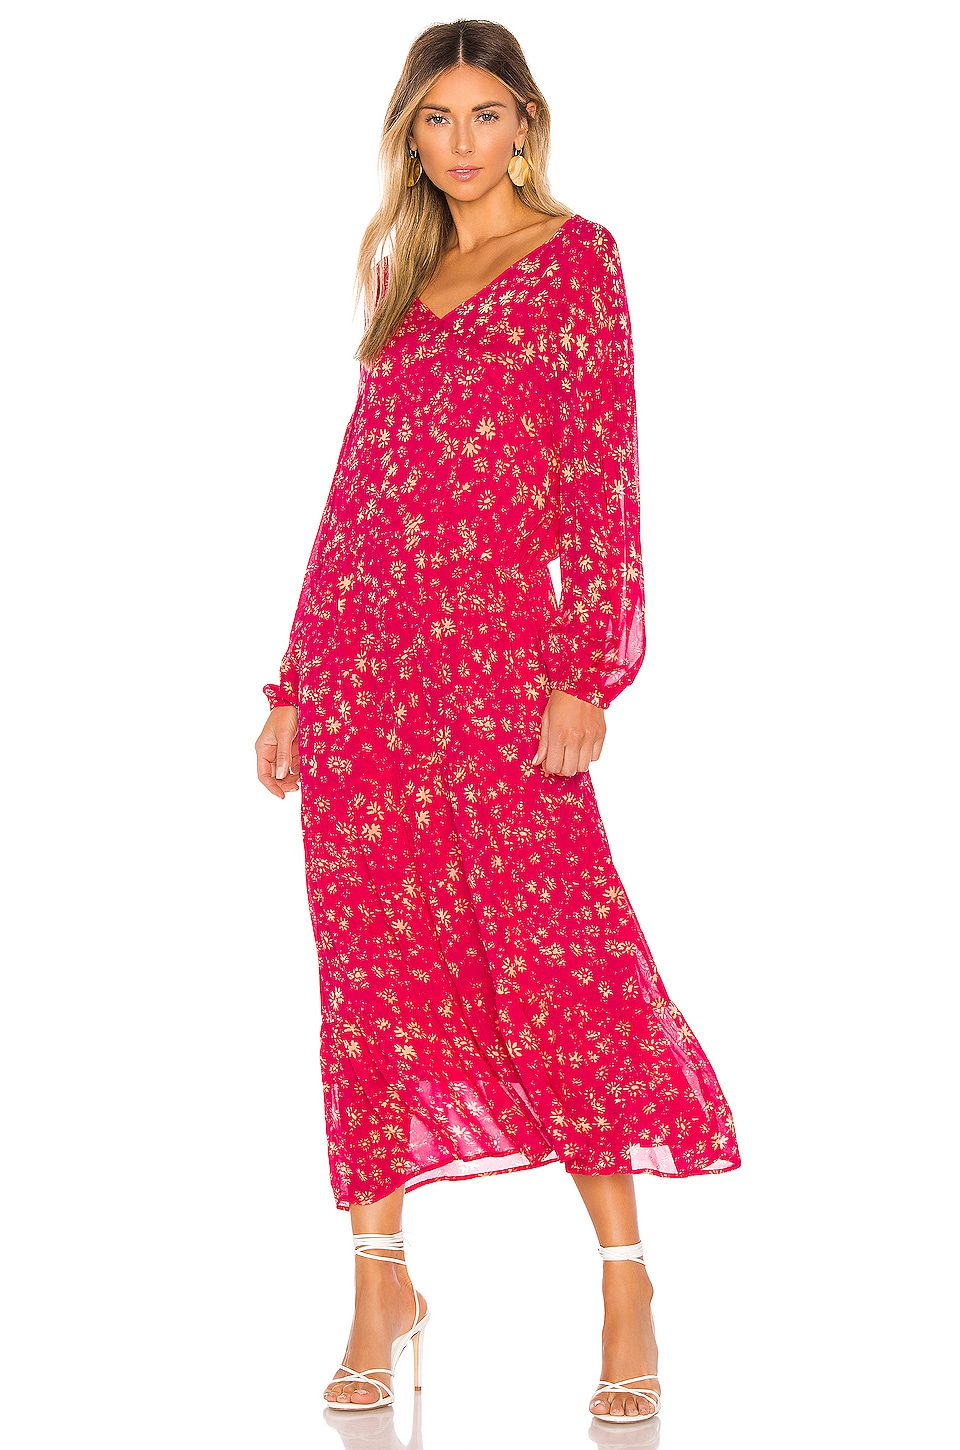 Free People Wall Flower Midi Dress in Red